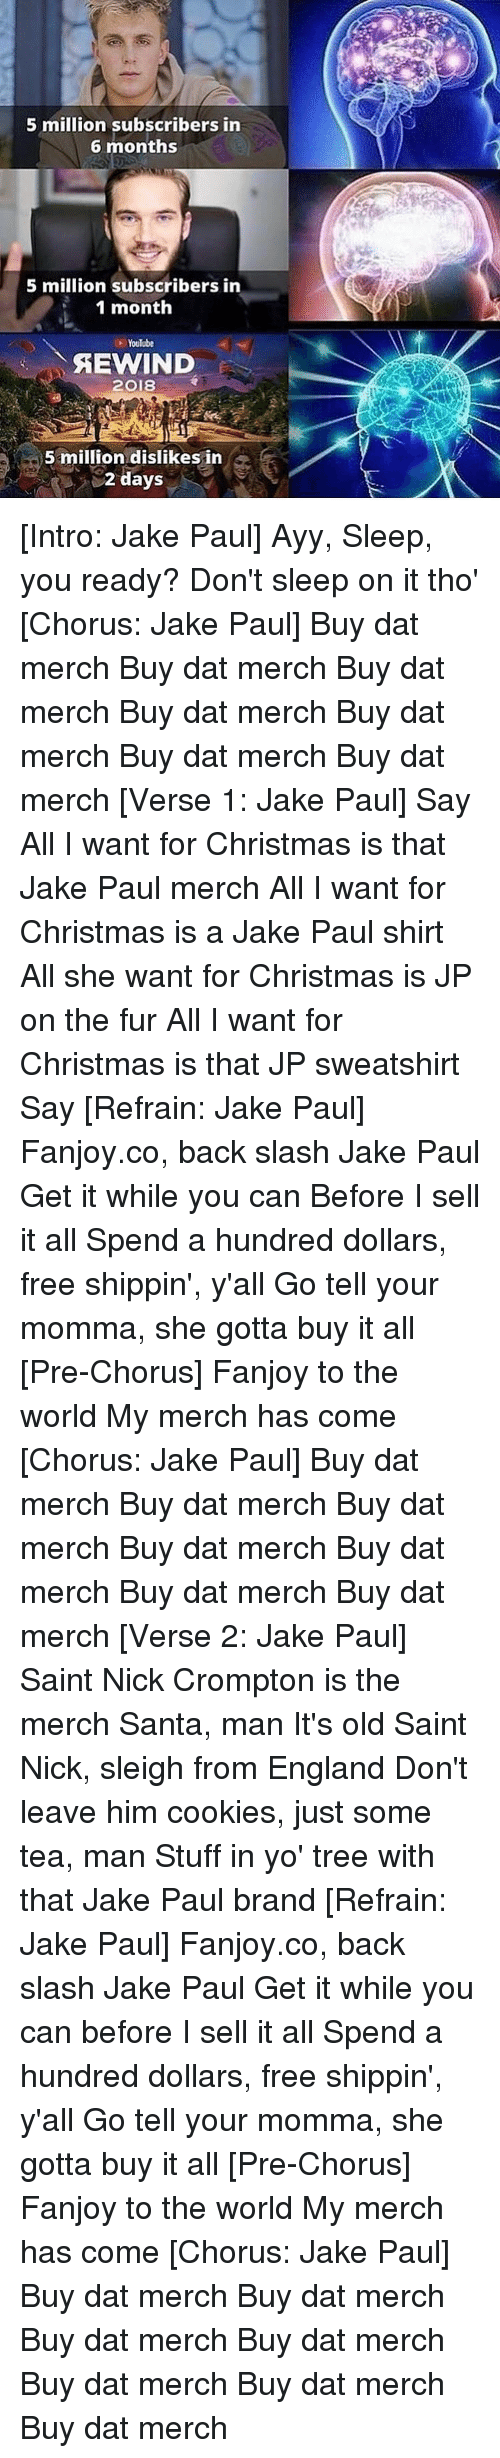 Christmas, Cookies, and England: 5 million subscribers in  6 months  5 million subscribers in  1 month  Youlube  AEWIND  2018  5 million dislikes in  2 days [Intro: Jake Paul] Ayy, Sleep, you ready? Don't sleep on it tho' [Chorus: Jake Paul] Buy dat merch Buy dat merch Buy dat merch Buy dat merch Buy dat merch Buy dat merch Buy dat merch [Verse 1: Jake Paul] Say All I want for Christmas is that Jake Paul merch All I want for Christmas is a Jake Paul shirt All she want for Christmas is JP on the fur All I want for Christmas is that JP sweatshirt Say [Refrain: Jake Paul] Fanjoy.co, back slash Jake Paul Get it while you can Before I sell it all Spend a hundred dollars, free shippin', y'all Go tell your momma, she gotta buy it all [Pre-Chorus] Fanjoy to the world My merch has come [Chorus: Jake Paul] Buy dat merch Buy dat merch Buy dat merch Buy dat merch Buy dat merch Buy dat merch Buy dat merch [Verse 2: Jake Paul] Saint Nick Crompton is the merch Santa, man It's old Saint Nick, sleigh from England Don't leave him cookies, just some tea, man Stuff in yo' tree with that Jake Paul brand [Refrain: Jake Paul] Fanjoy.co, back slash Jake Paul Get it while you can before I sell it all Spend a hundred dollars, free shippin', y'all Go tell your momma, she gotta buy it all [Pre-Chorus] Fanjoy to the world My merch has come [Chorus: Jake Paul] Buy dat merch Buy dat merch Buy dat merch Buy dat merch Buy dat merch Buy dat merch Buy dat merch